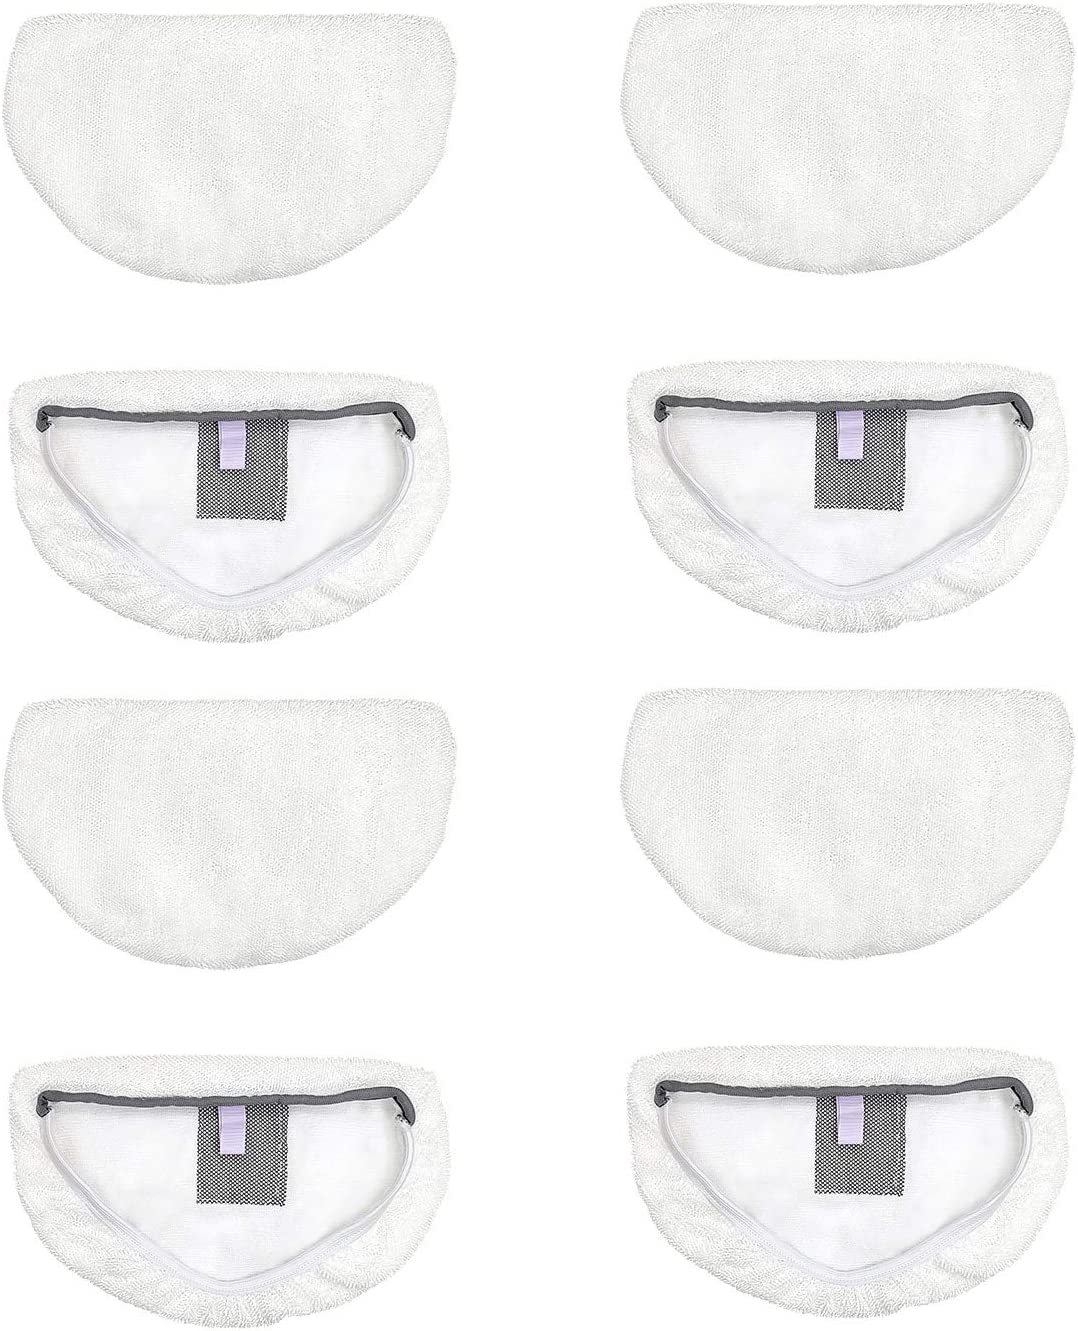 Fushing 8Pcs Steam Mop Pads, Washable Microfiber Cleaning Steamer Replacement Pads for Bissell Powerfresh Steam Mop 1940 1440 1544 1806 2075 Series, Model 1940 1940a 1940w 1806 2075 1544a 5938